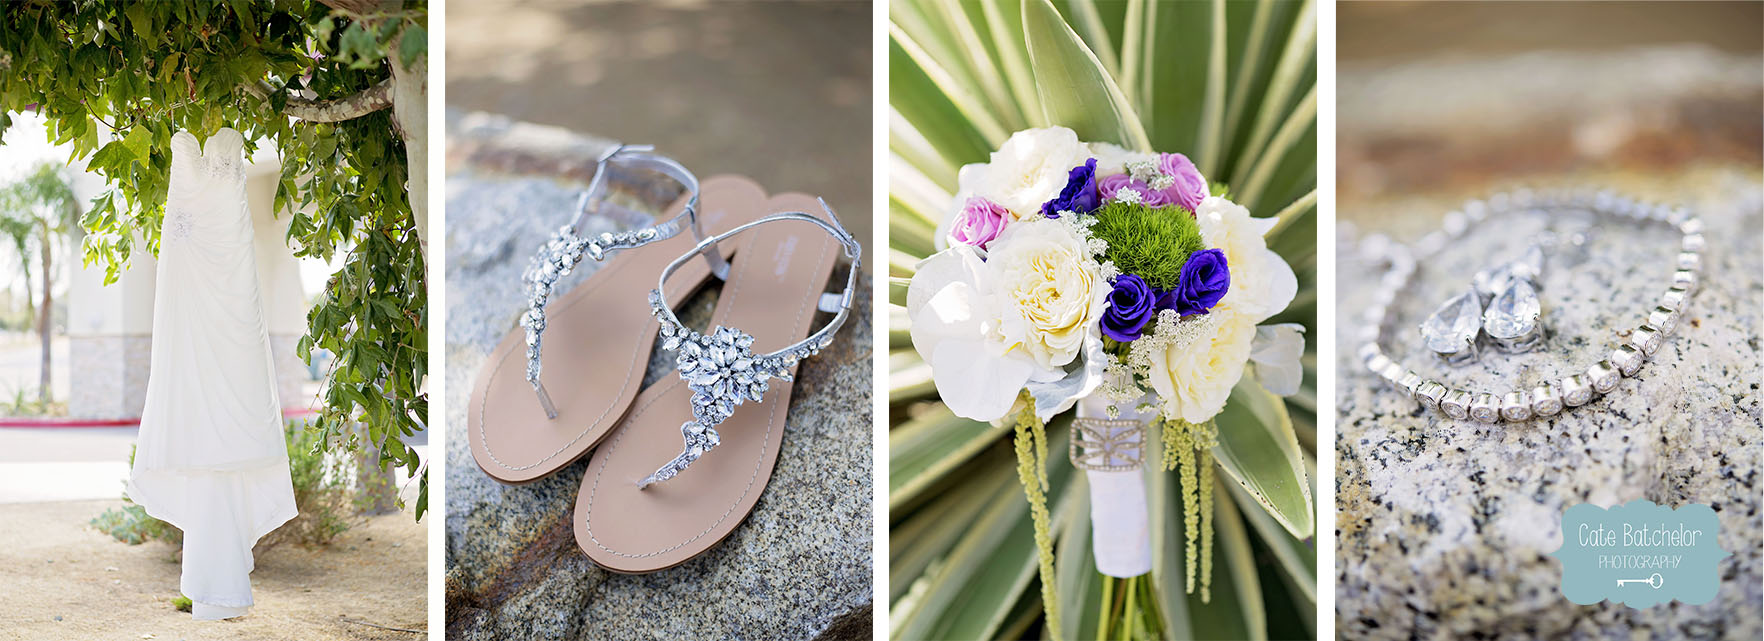 Just a few of the beautiful details that Jen wore on her wedding day.